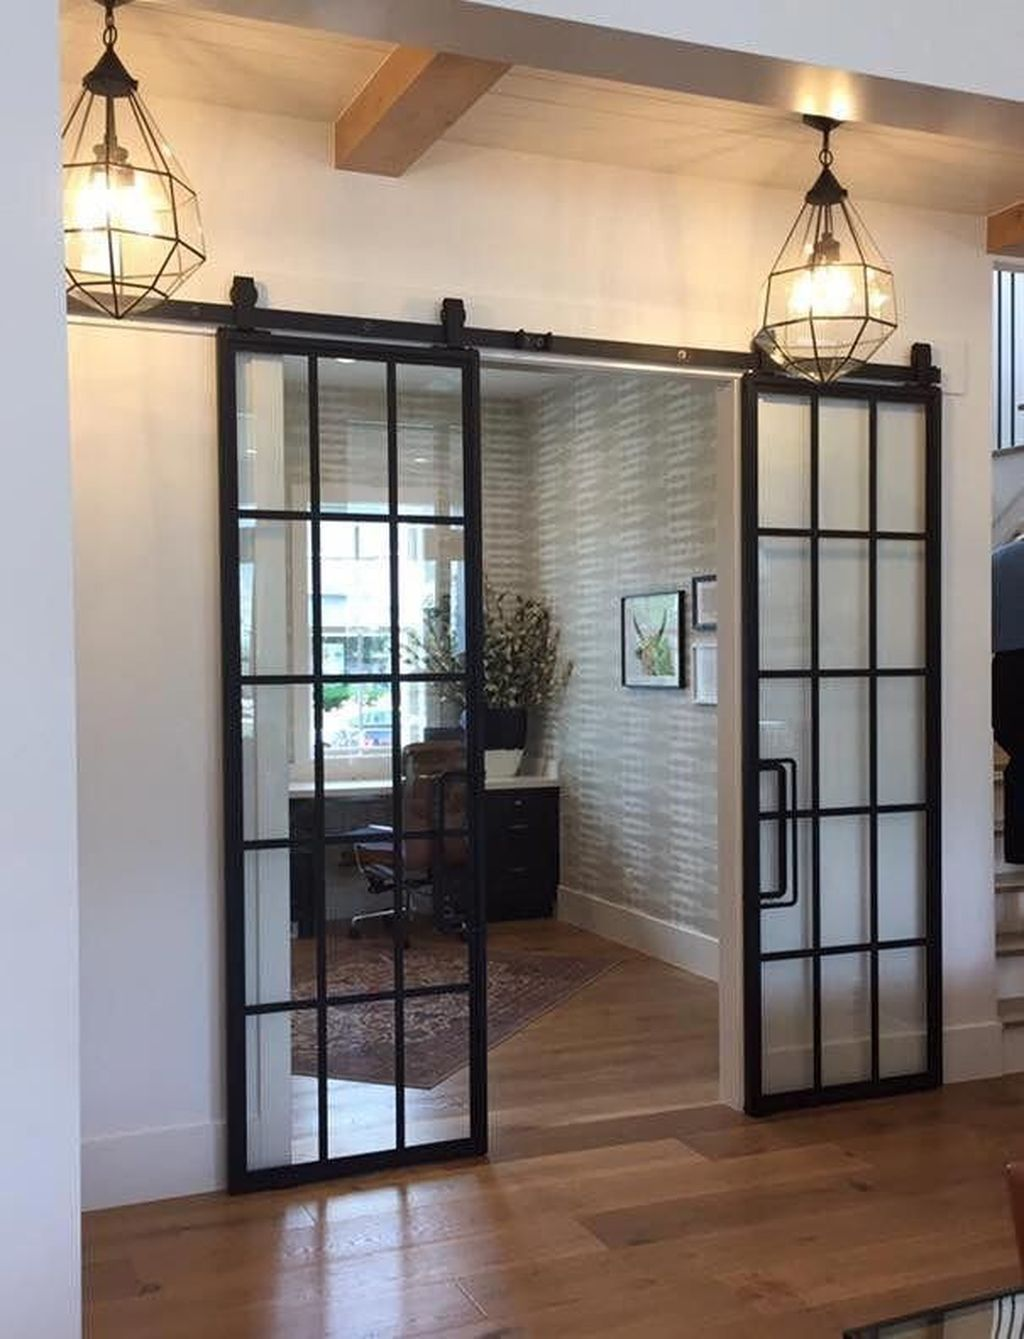 20 Amazing Sliding Door Wardrobe Design Ideas Interior Sliding Barn Doors Glass Doors Interior Home